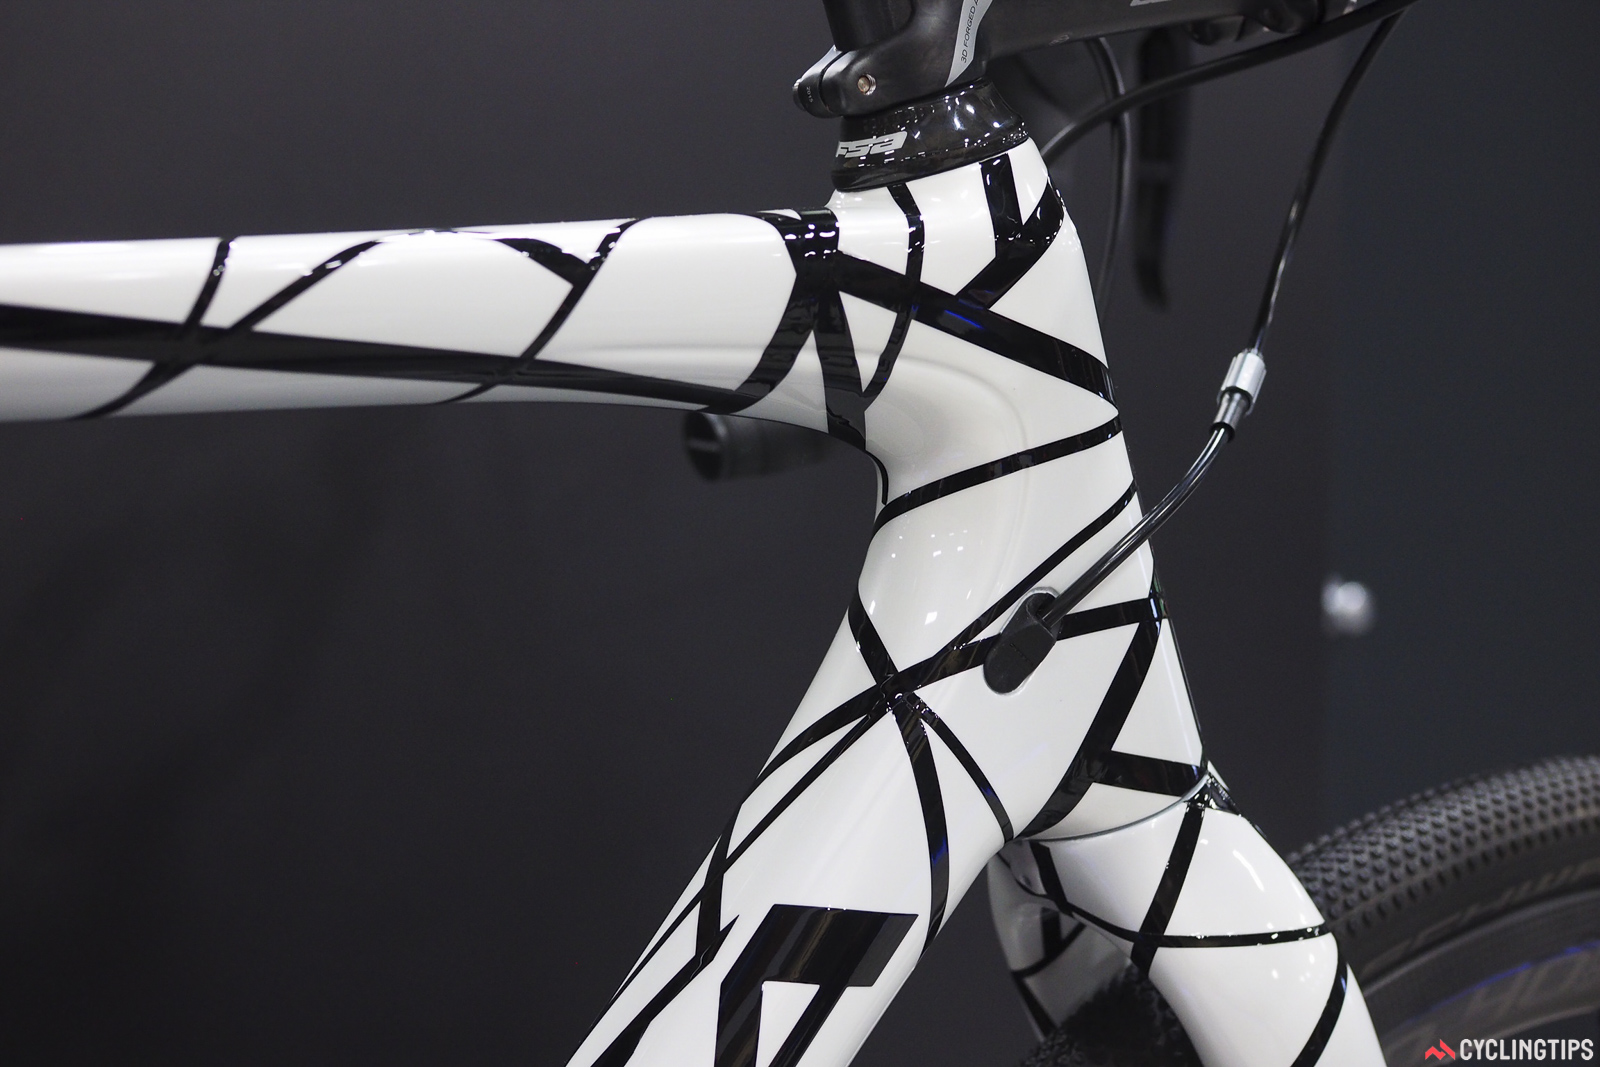 Orbea is actually considering offering this paint job to the public, but it won't be cheap. Each one is truly unique, with every strip of masking tape laid by hand in random orientations. Provided the cost is fairly reasonable, I think the take rate could be quite high.